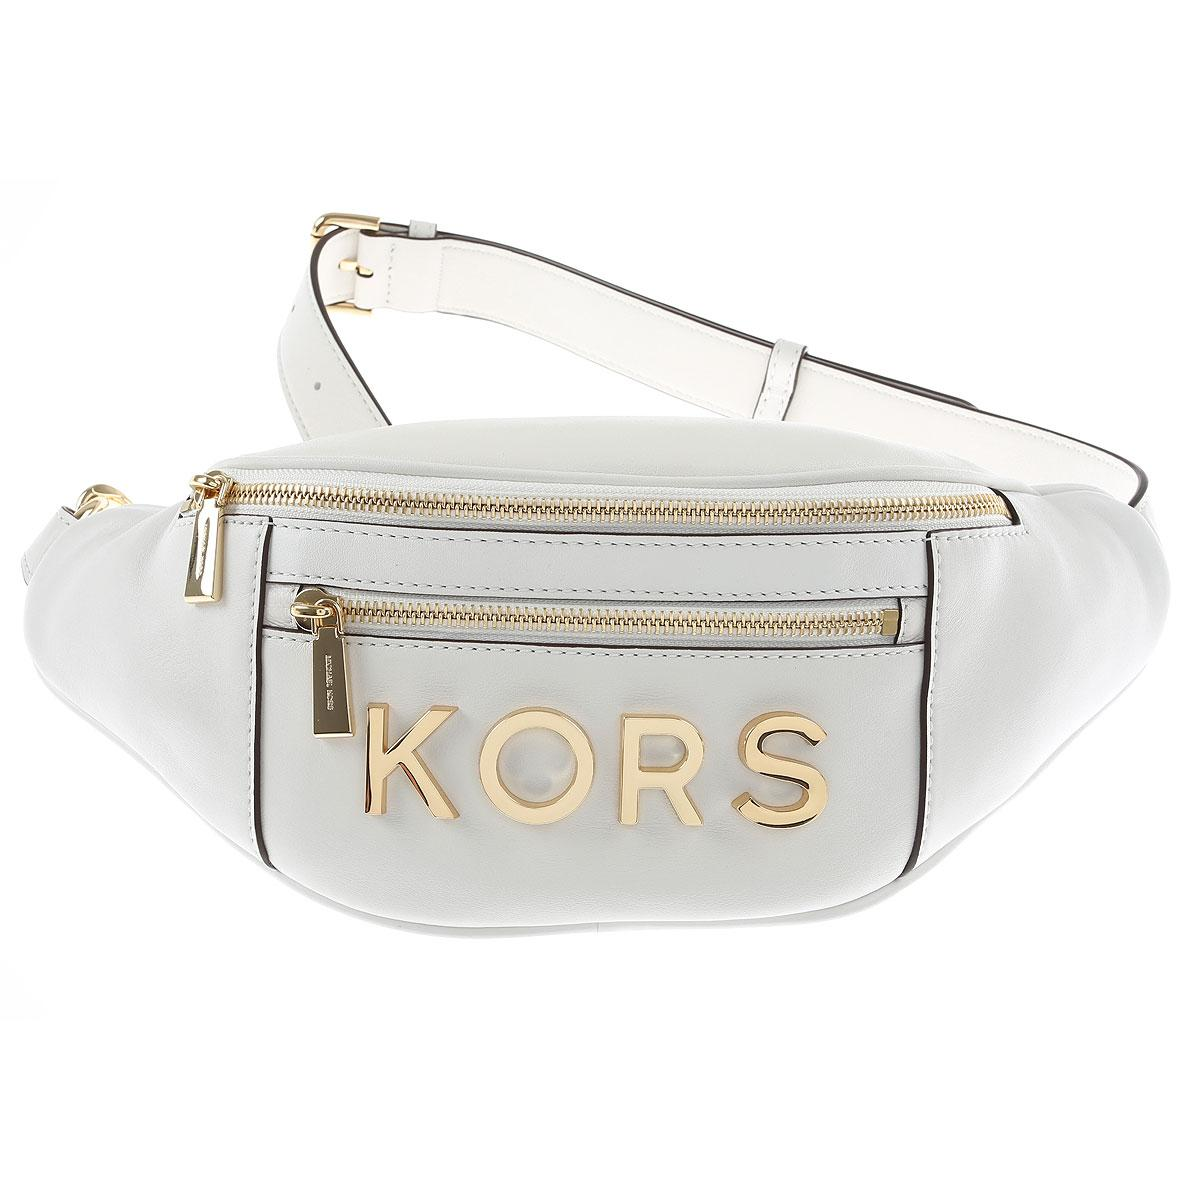 3c74188b7c3d Lyst - Michael Kors Shoulder Bag For Women in White